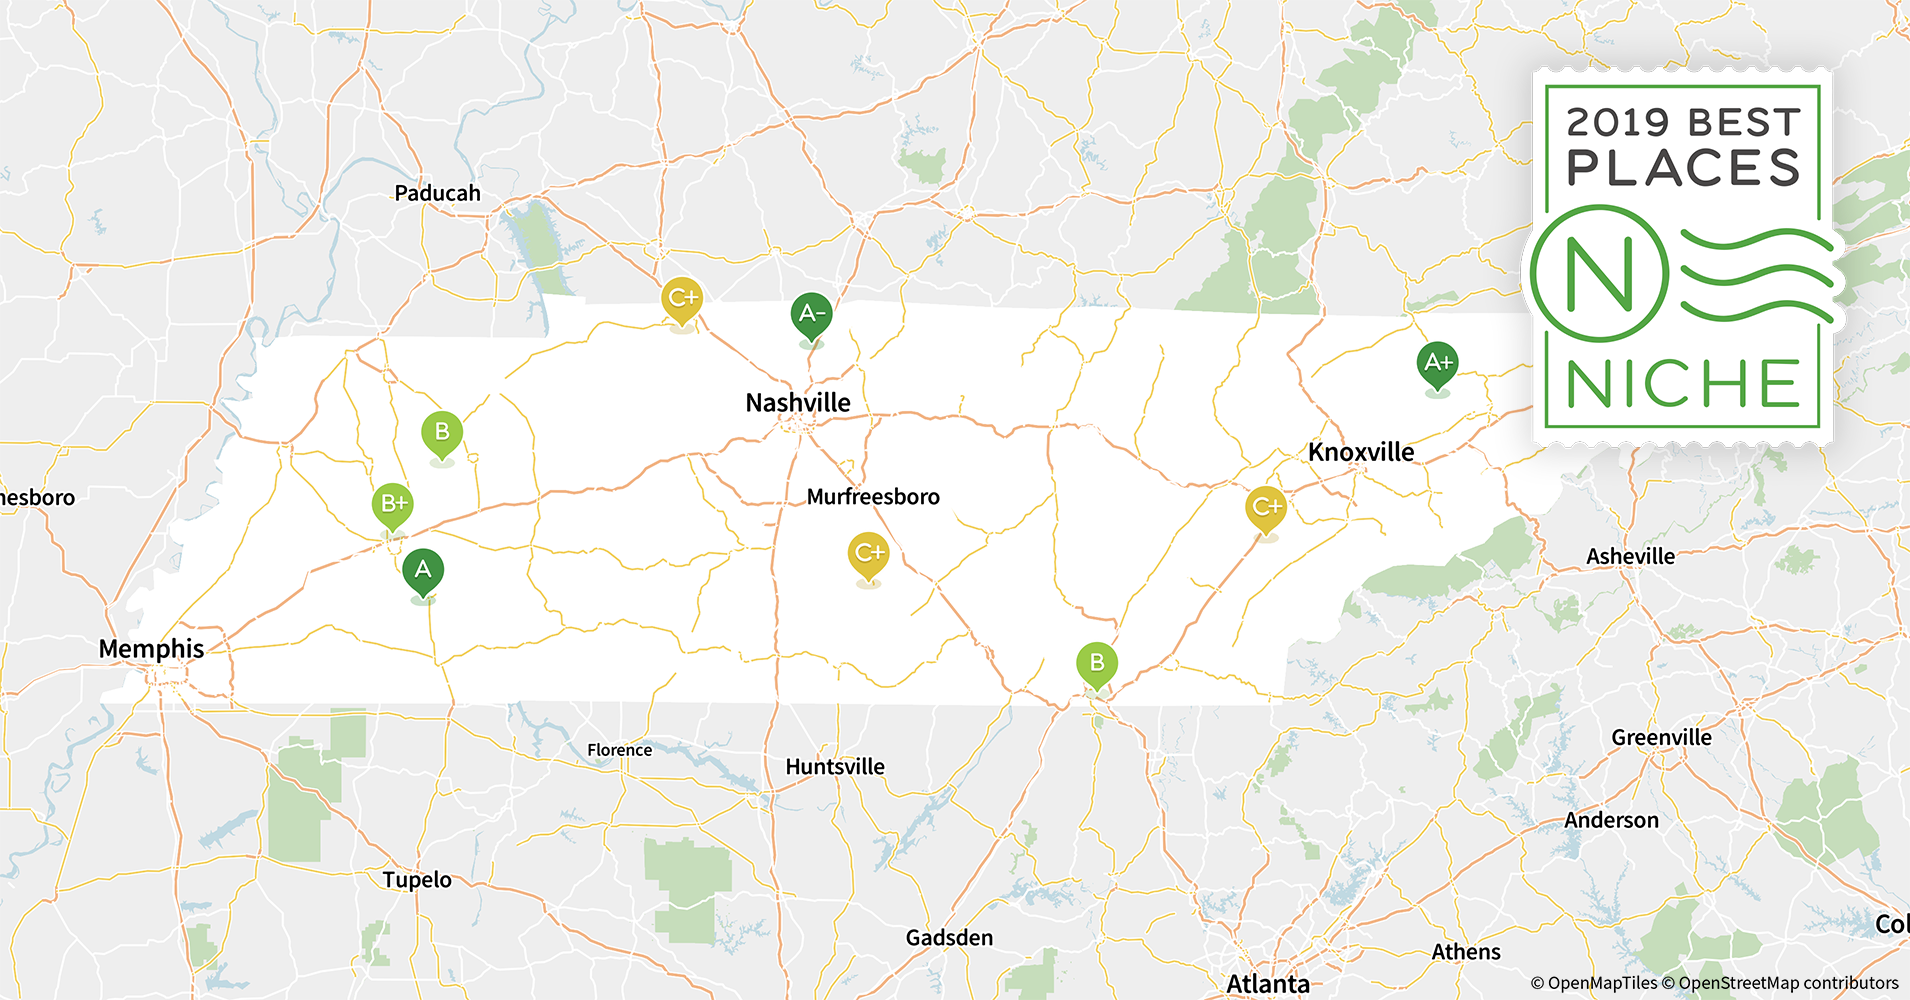 2019 Best Places To Live In Tennessee Niche